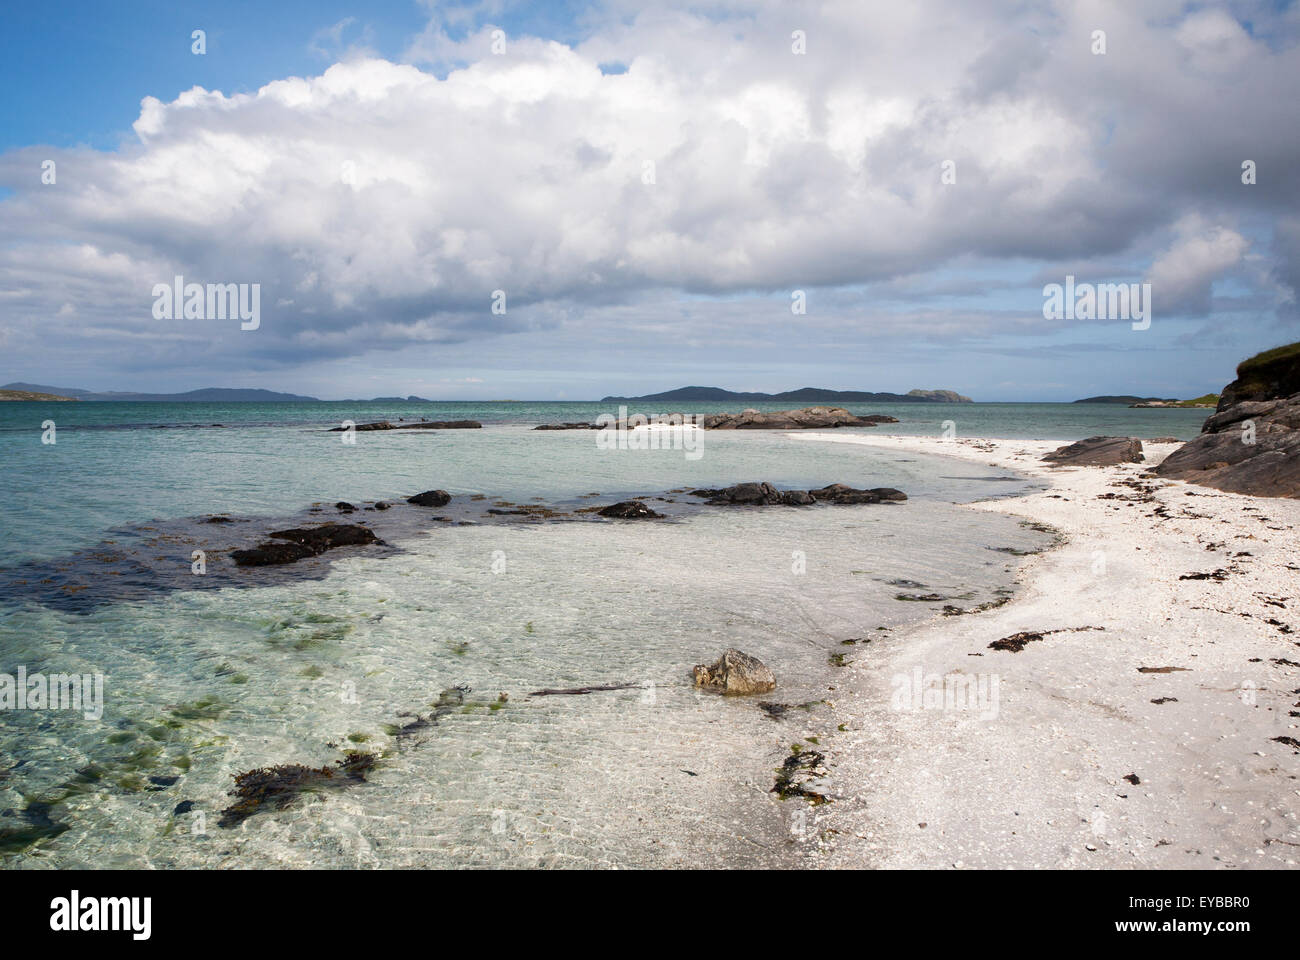 White sand at Traigh Mhor beach, the Cockle Strand, Barra, Outer Hebrides, Scotland, UK - Stock Image